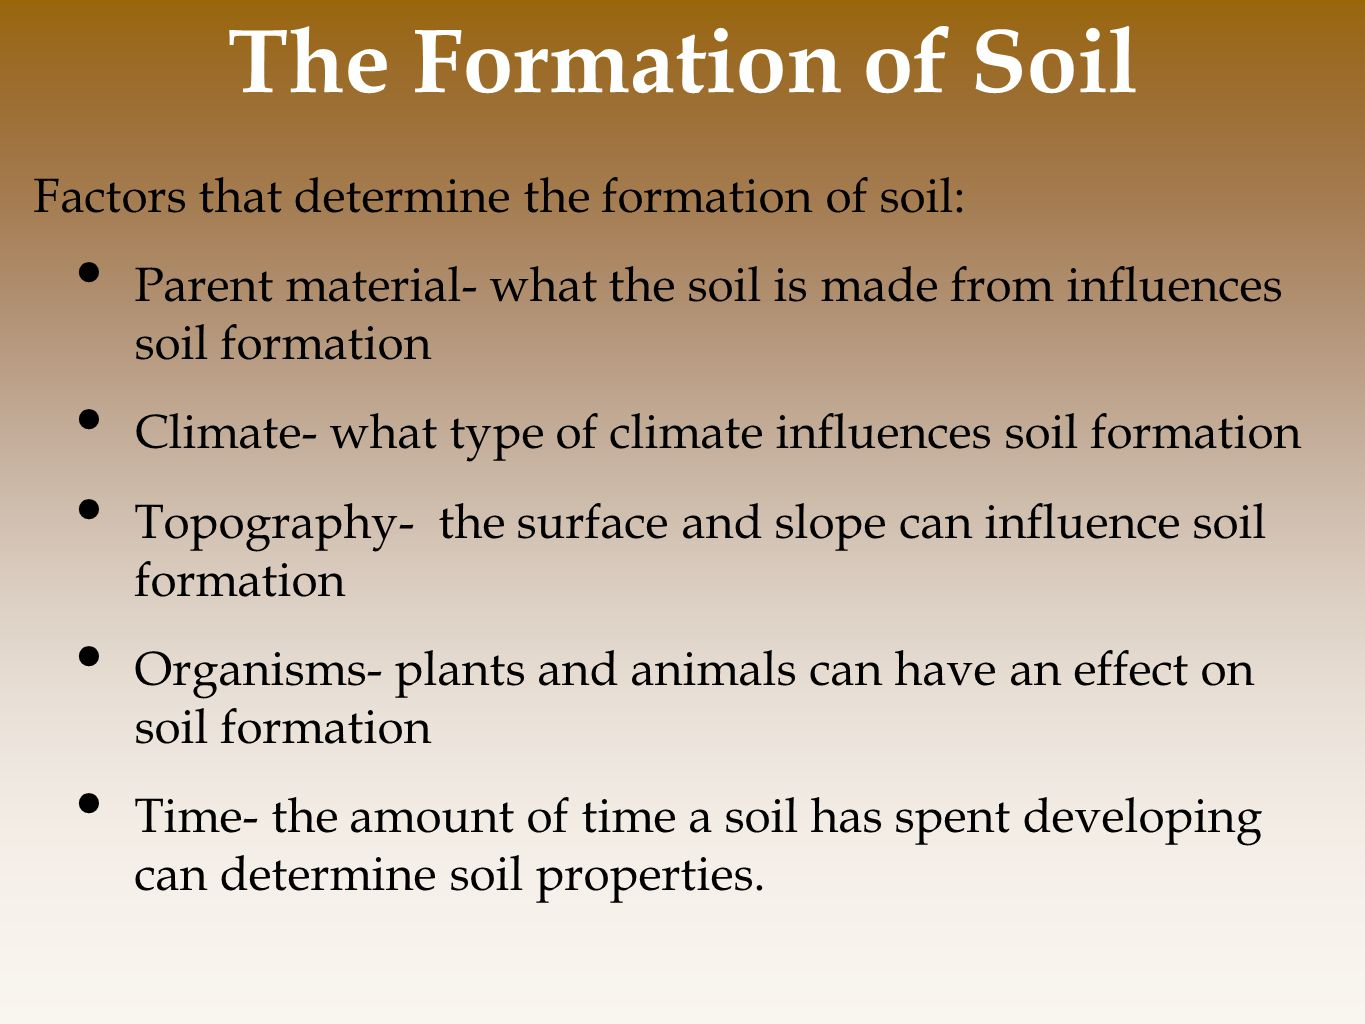 Factors that determine the formation of soil: Parent material- what the soil is made from influences soil formation Climate- what type of climate influences soil formation Topography- the surface and slope can influence soil formation Organisms- plants and animals can have an effect on soil formation Time- the amount of time a soil has spent developing can determine soil properties.